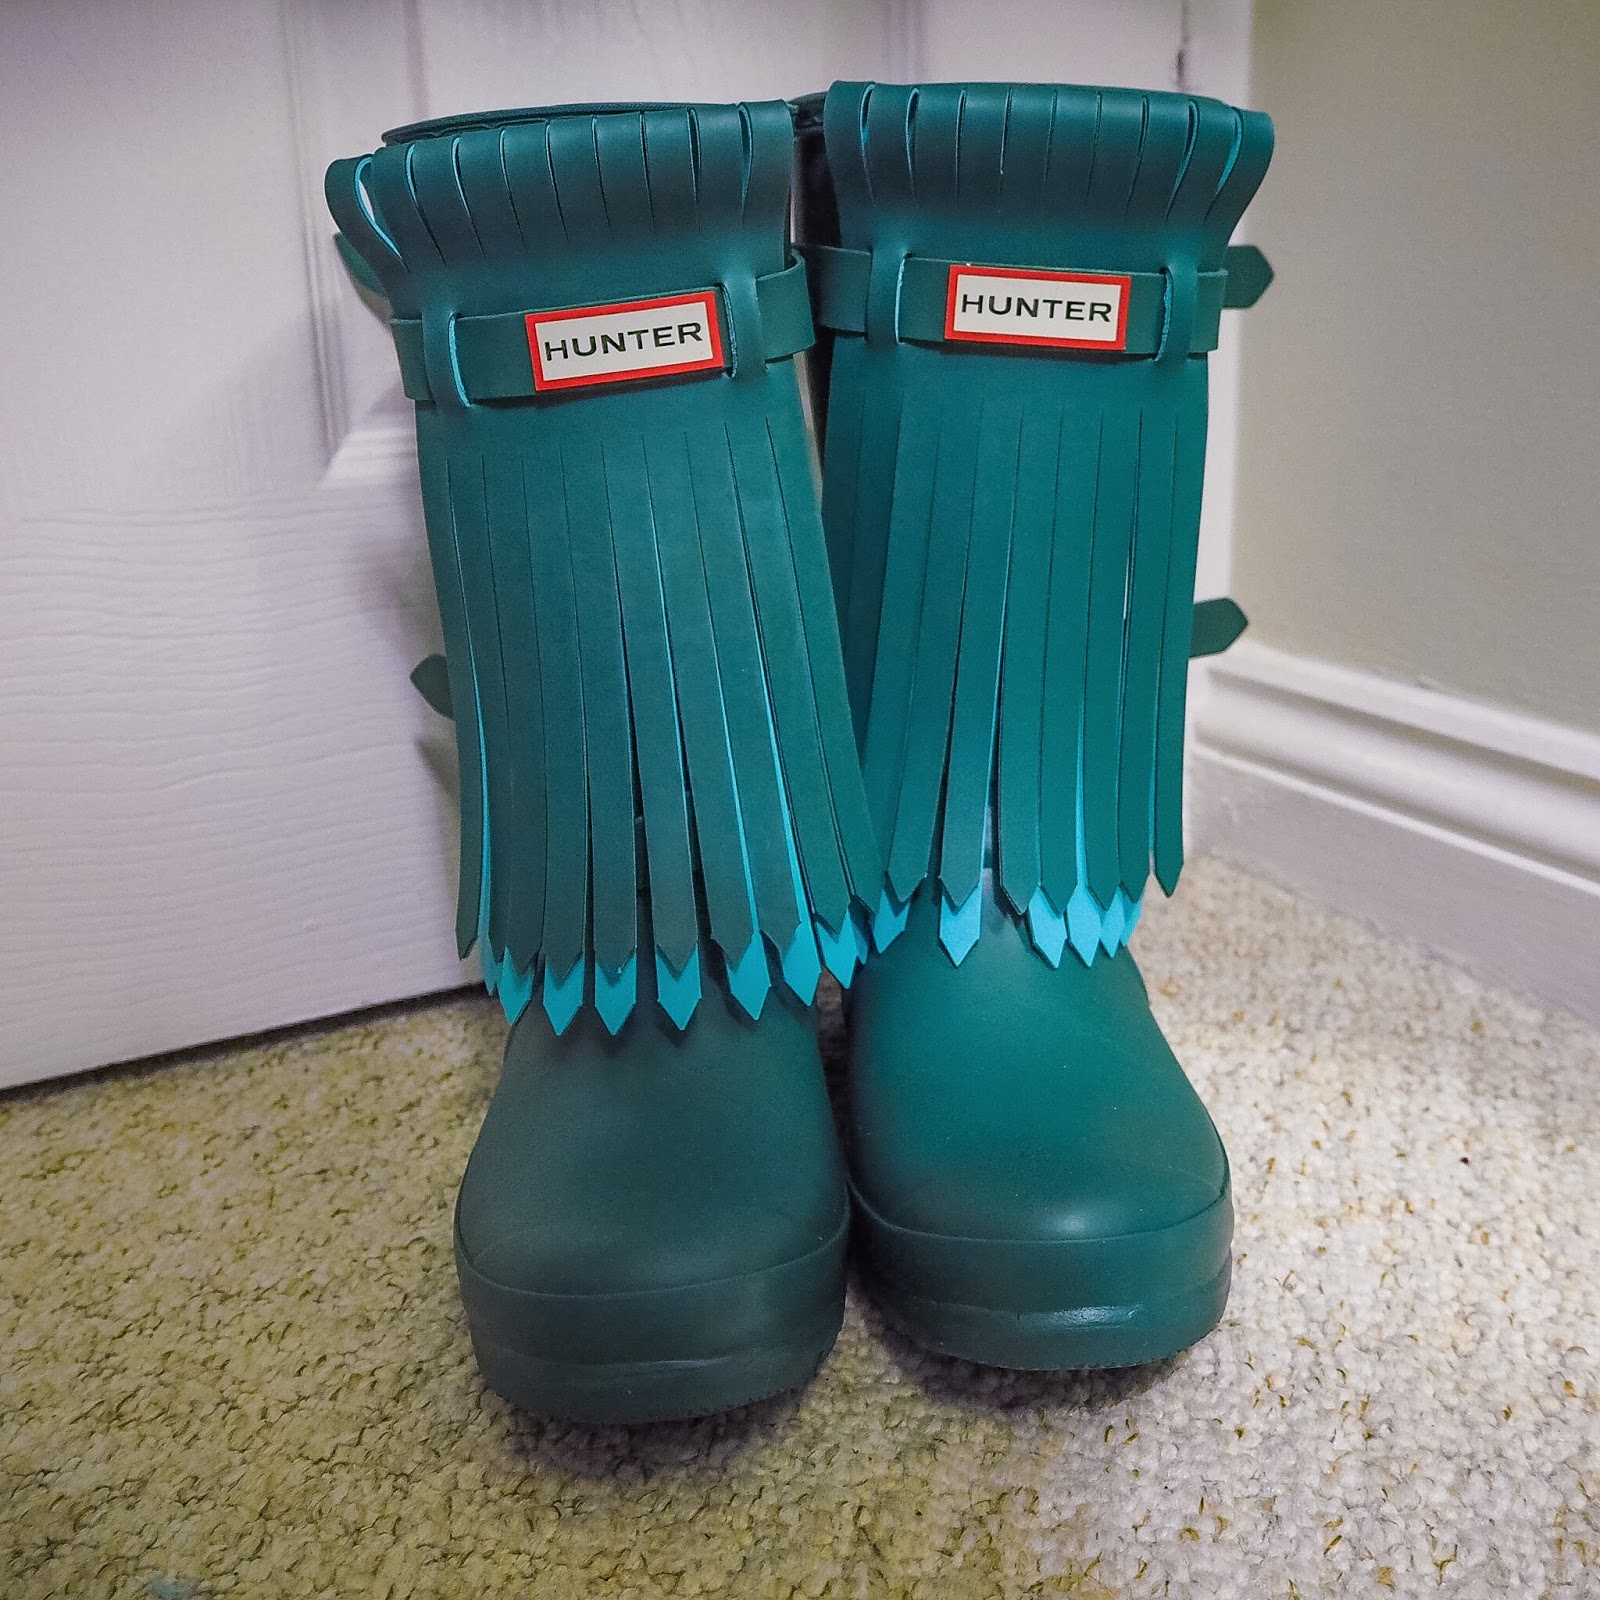 Fringed Hunter wellies